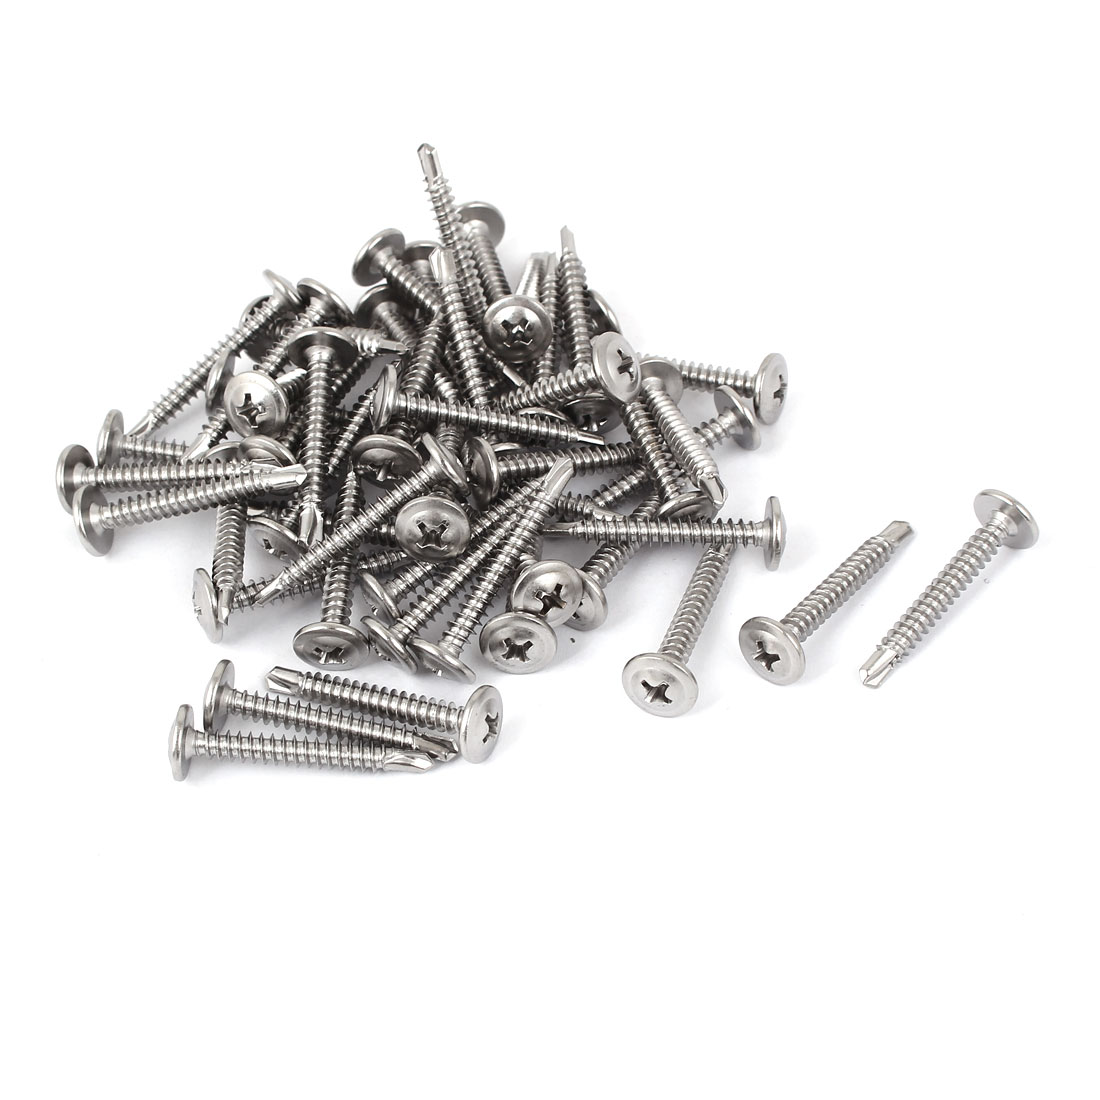 M4.2x32mm Stainless Steel Flat Phillips Head Self Drilling Tapping Screws 50pcs